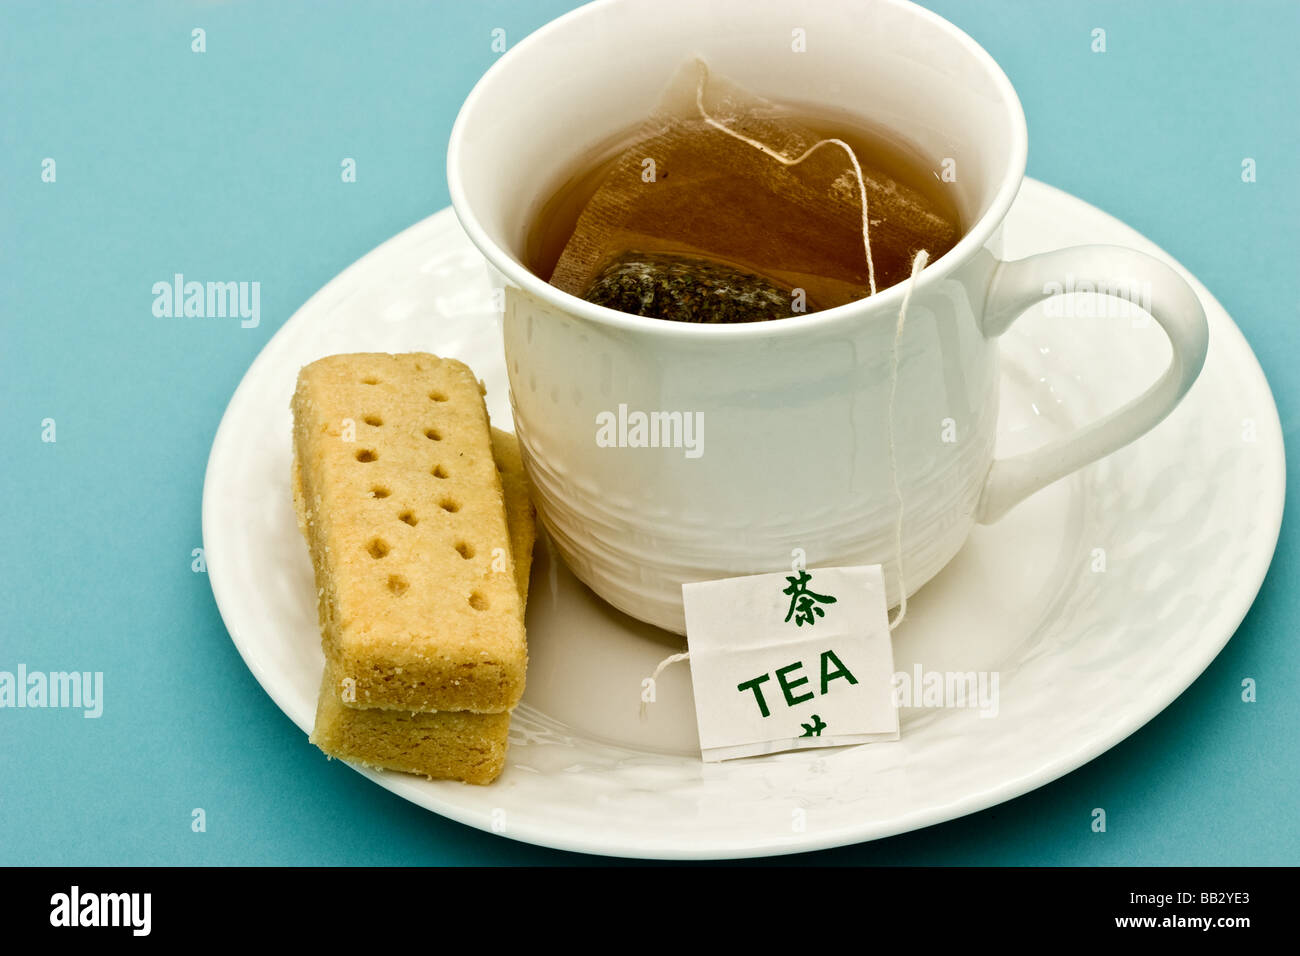 Cup of tea with shortbread biscuit - Stock Image